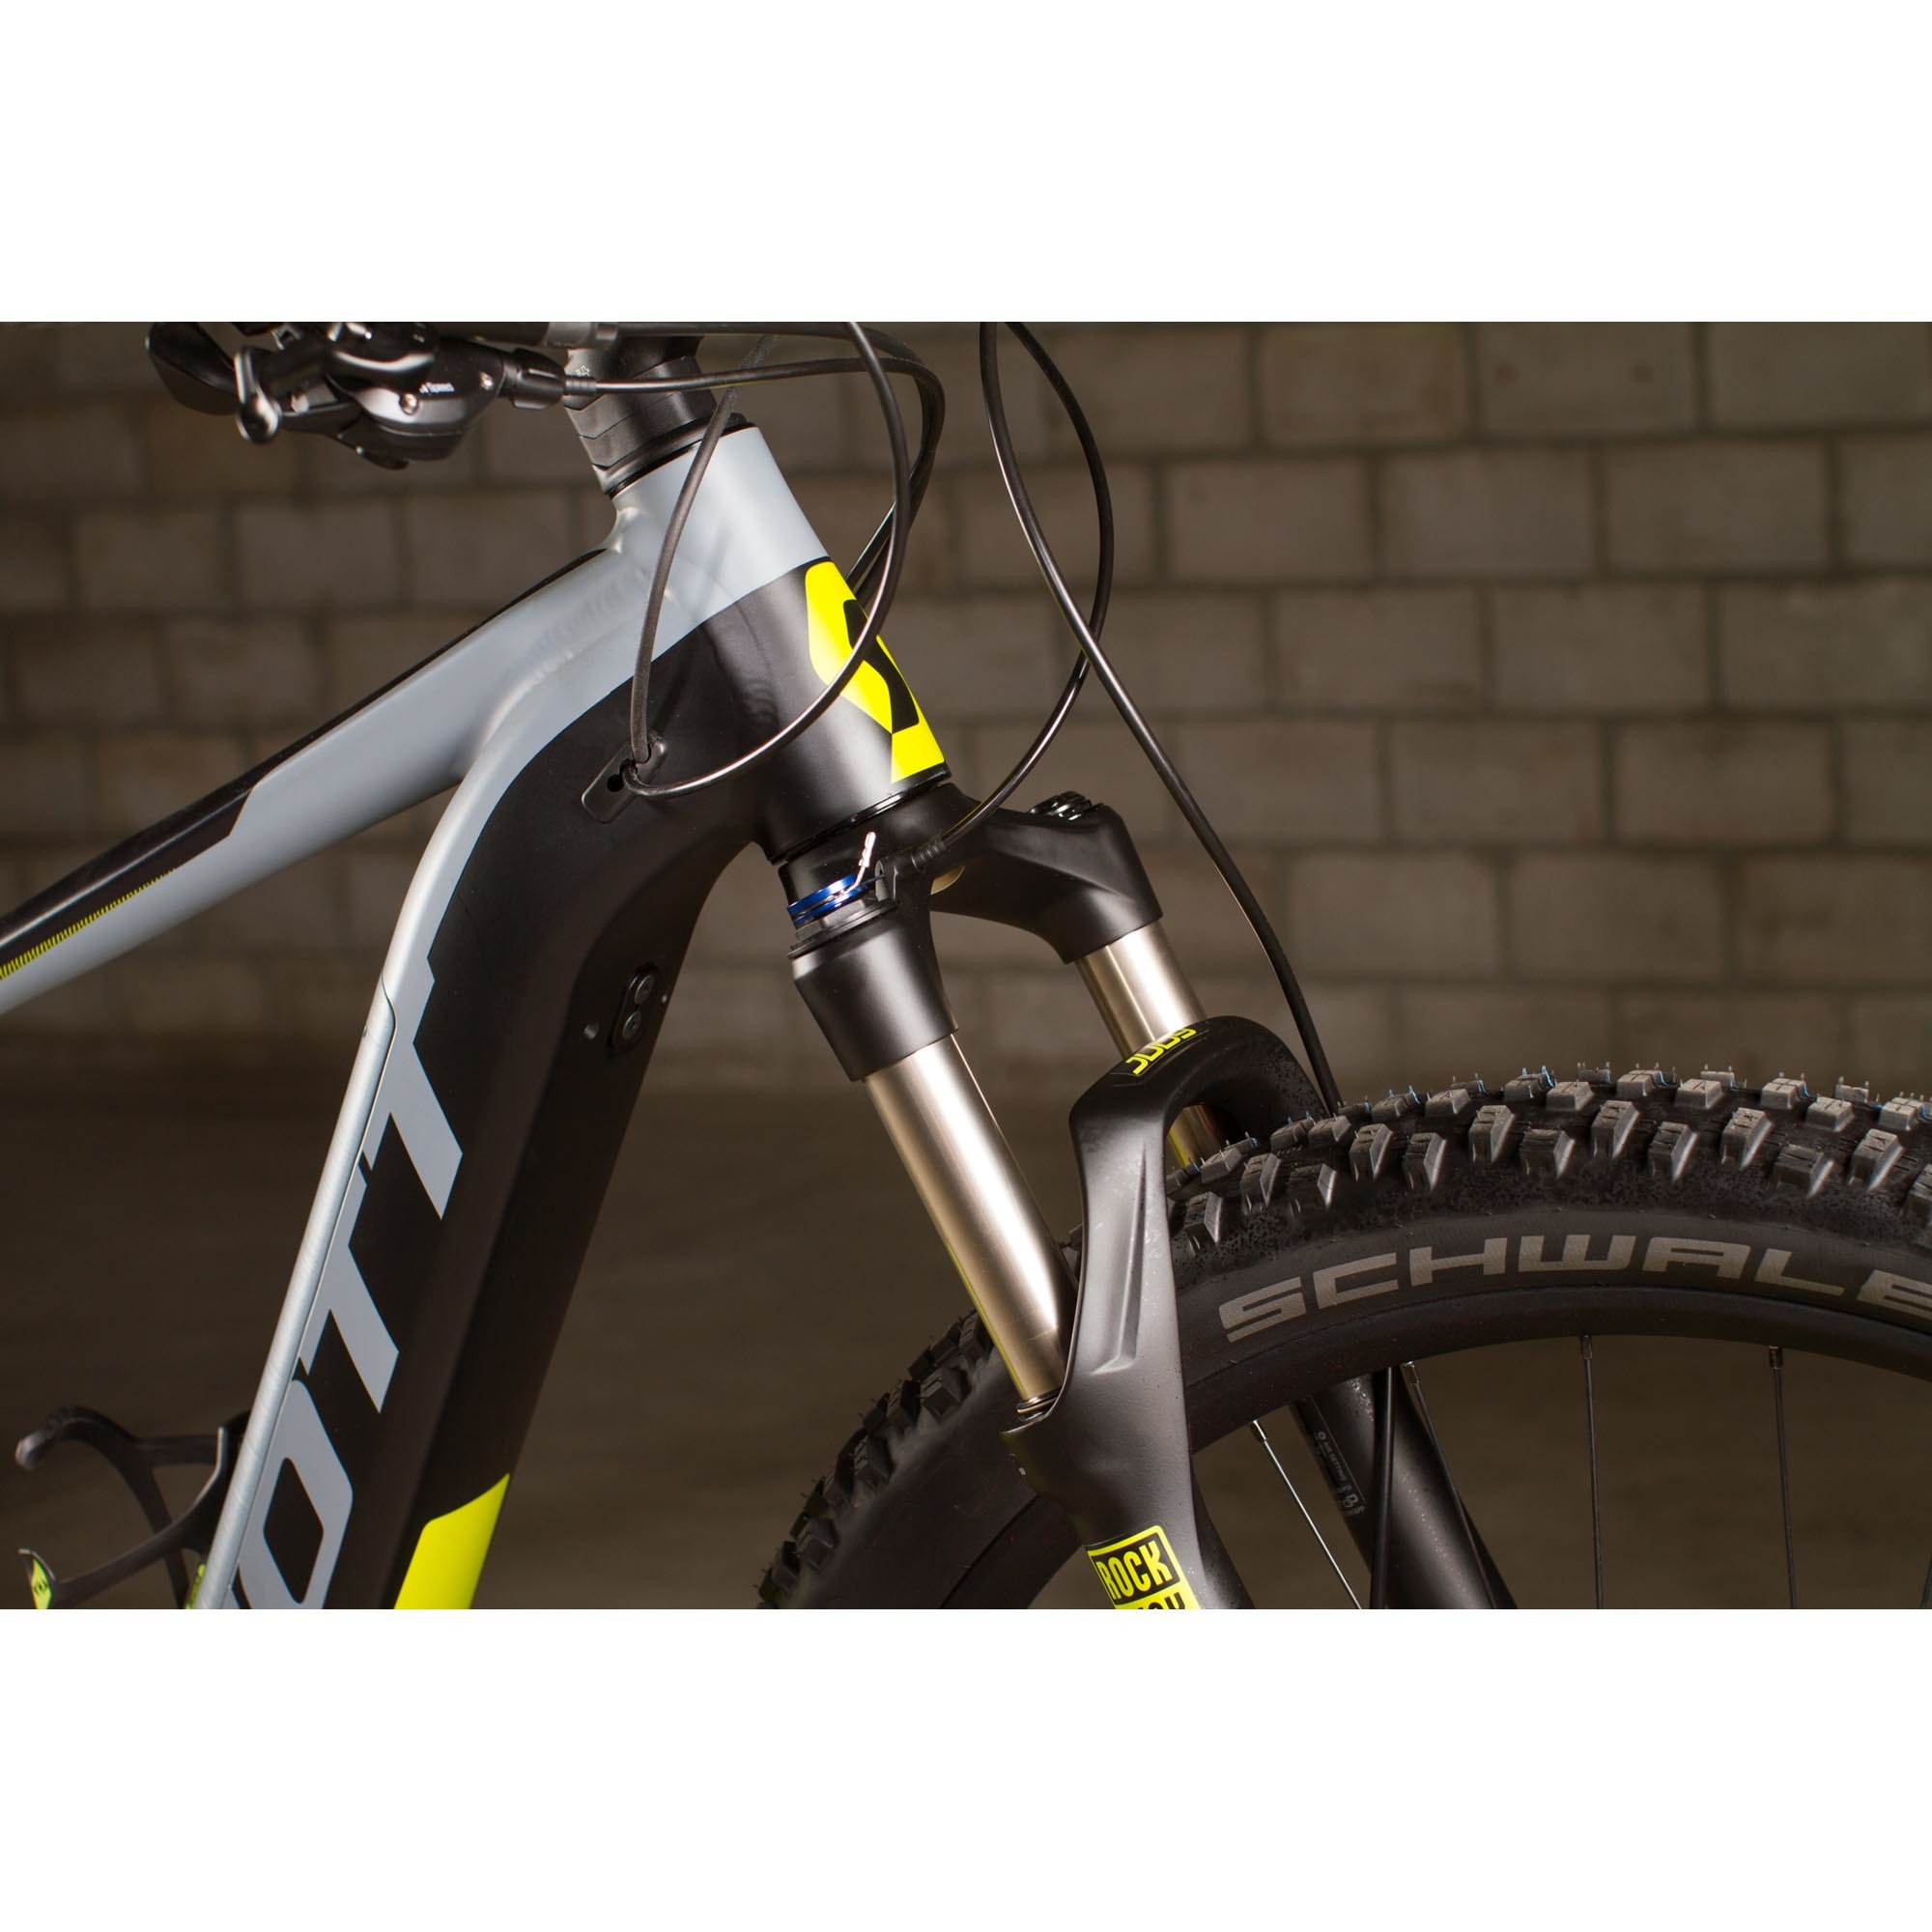 SCOTT E-Scale 920 Bike